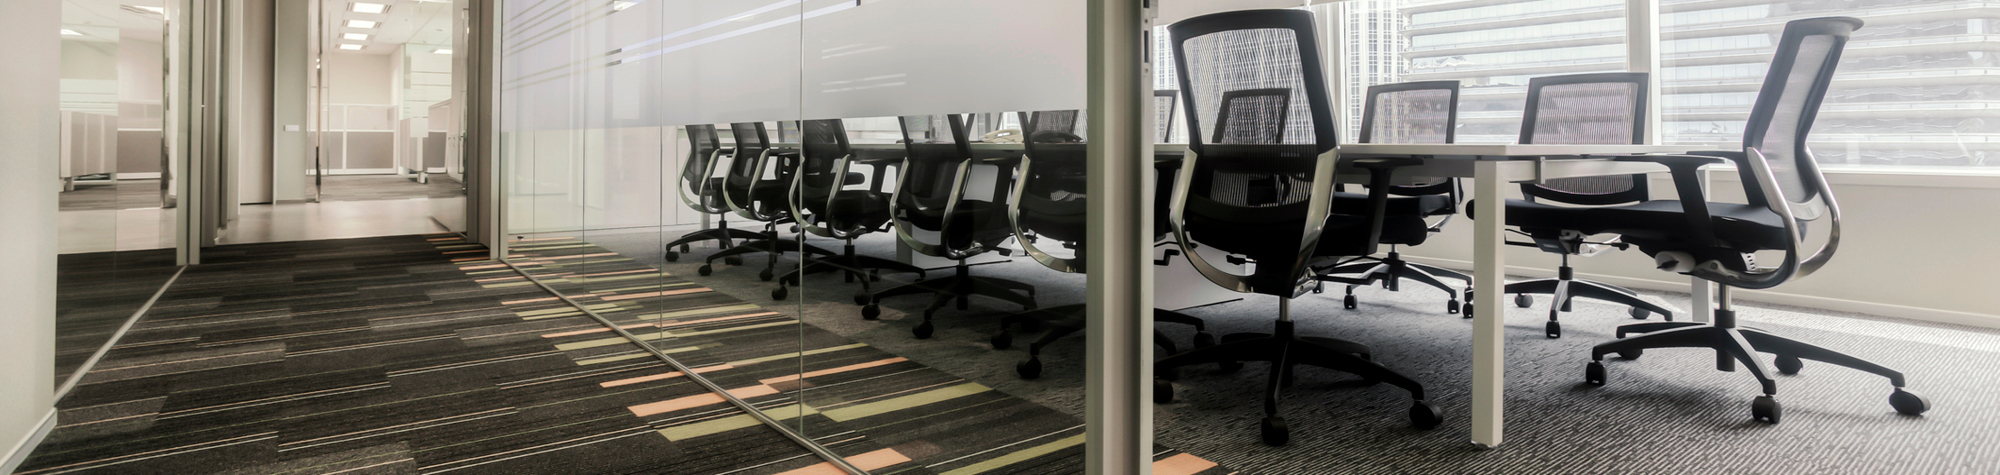 Executive Board Janine Owen Cover Image. Featuring a glass-walled boardroom with a 14-seater table surrounded by wheeled, grey and black office chairs. Also featuring a square patterned carpet and doorway to another office room. Search Consultancy.